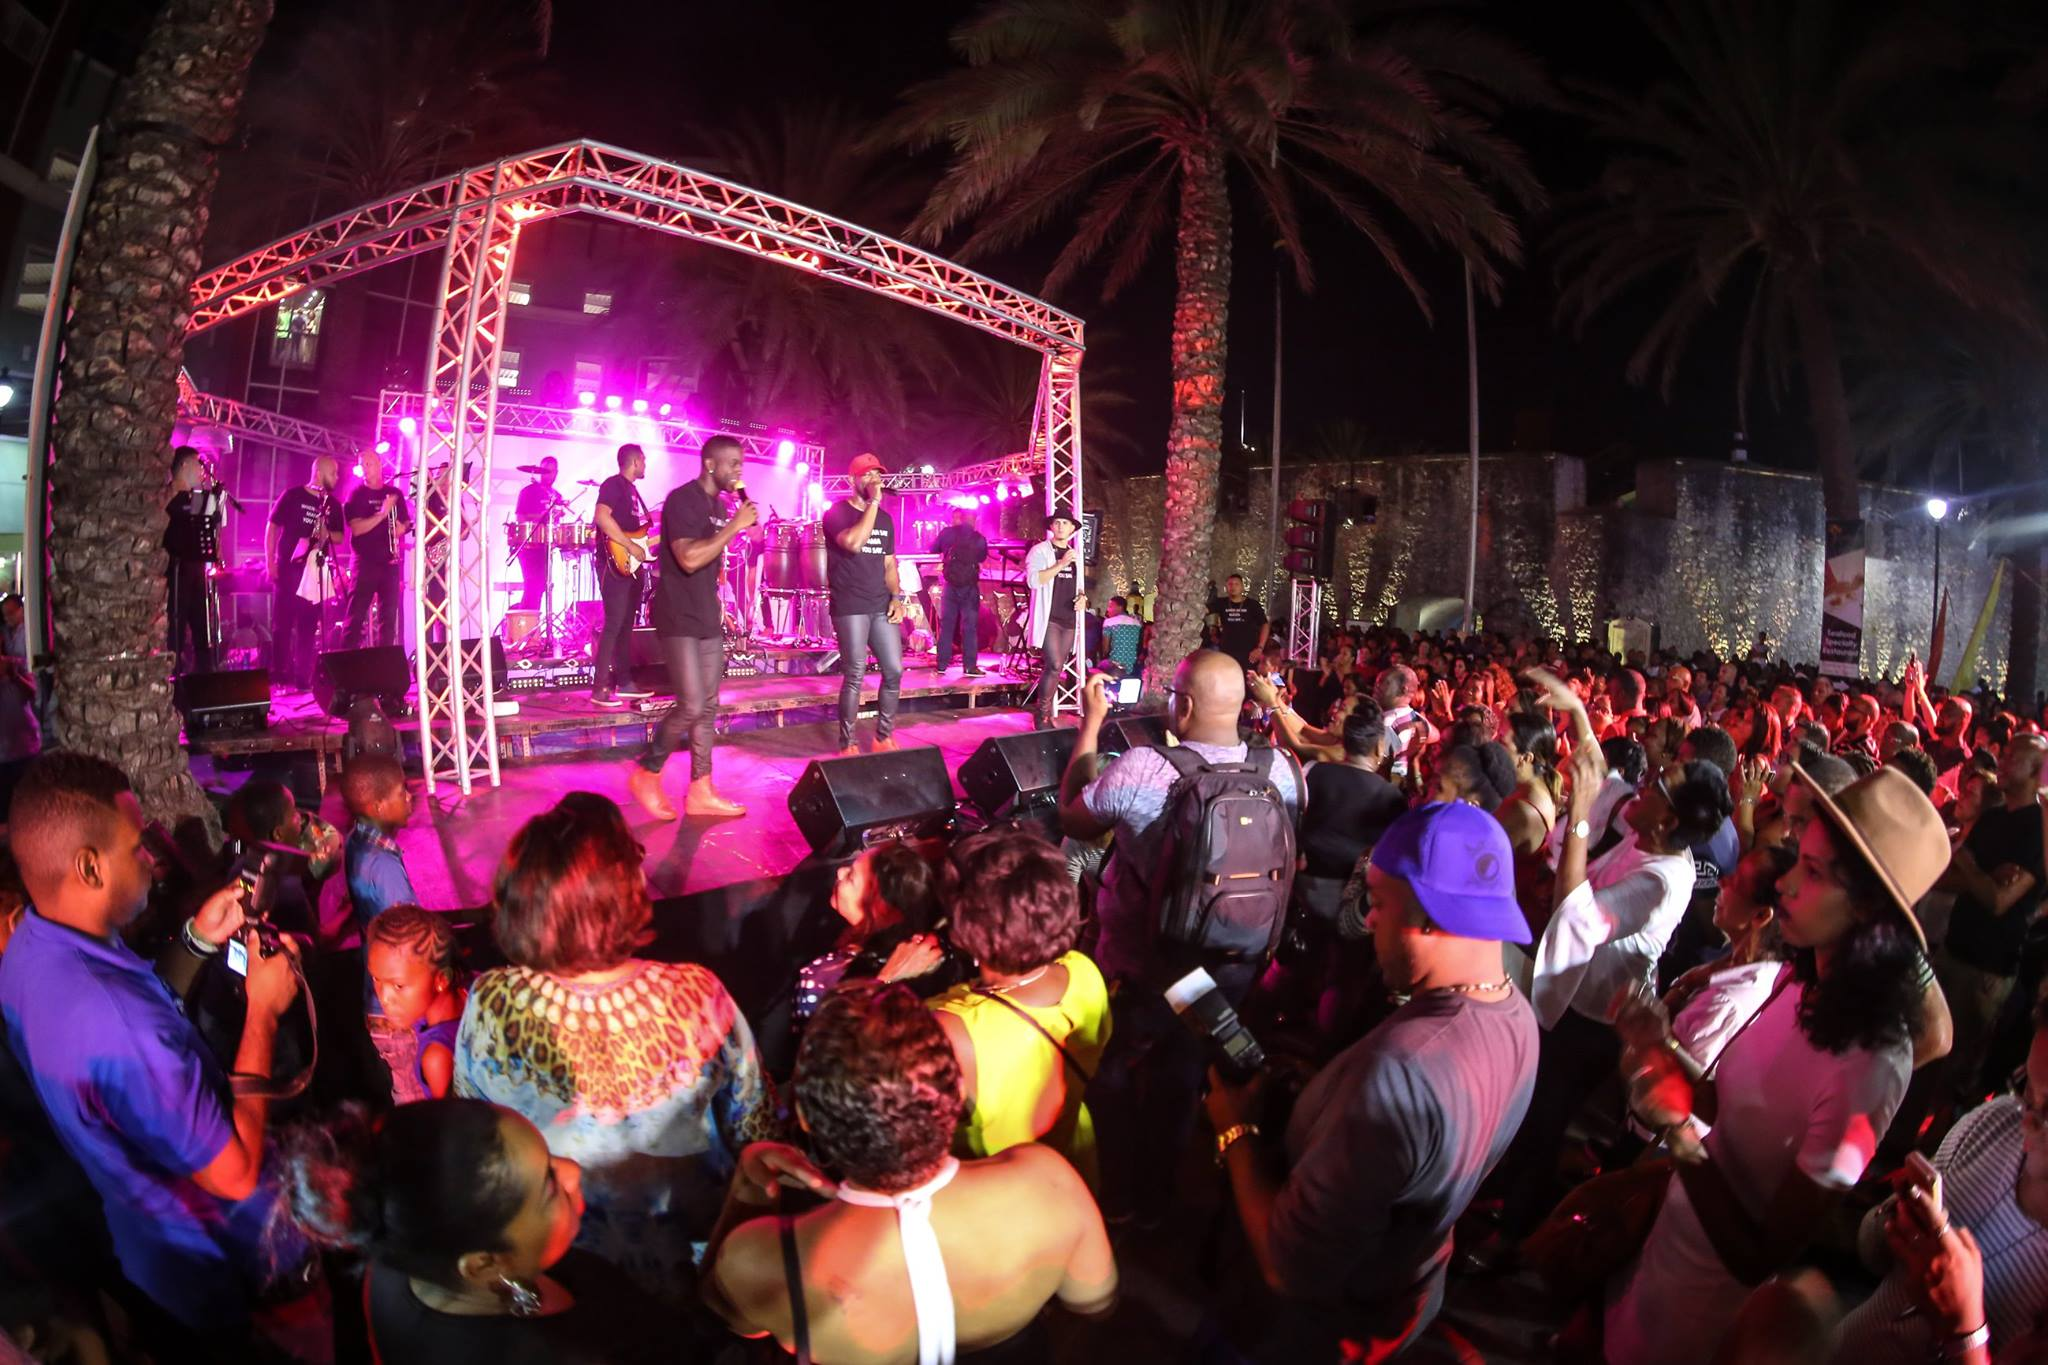 curacao u0026 39 s amazing nightlife  you need to know it all